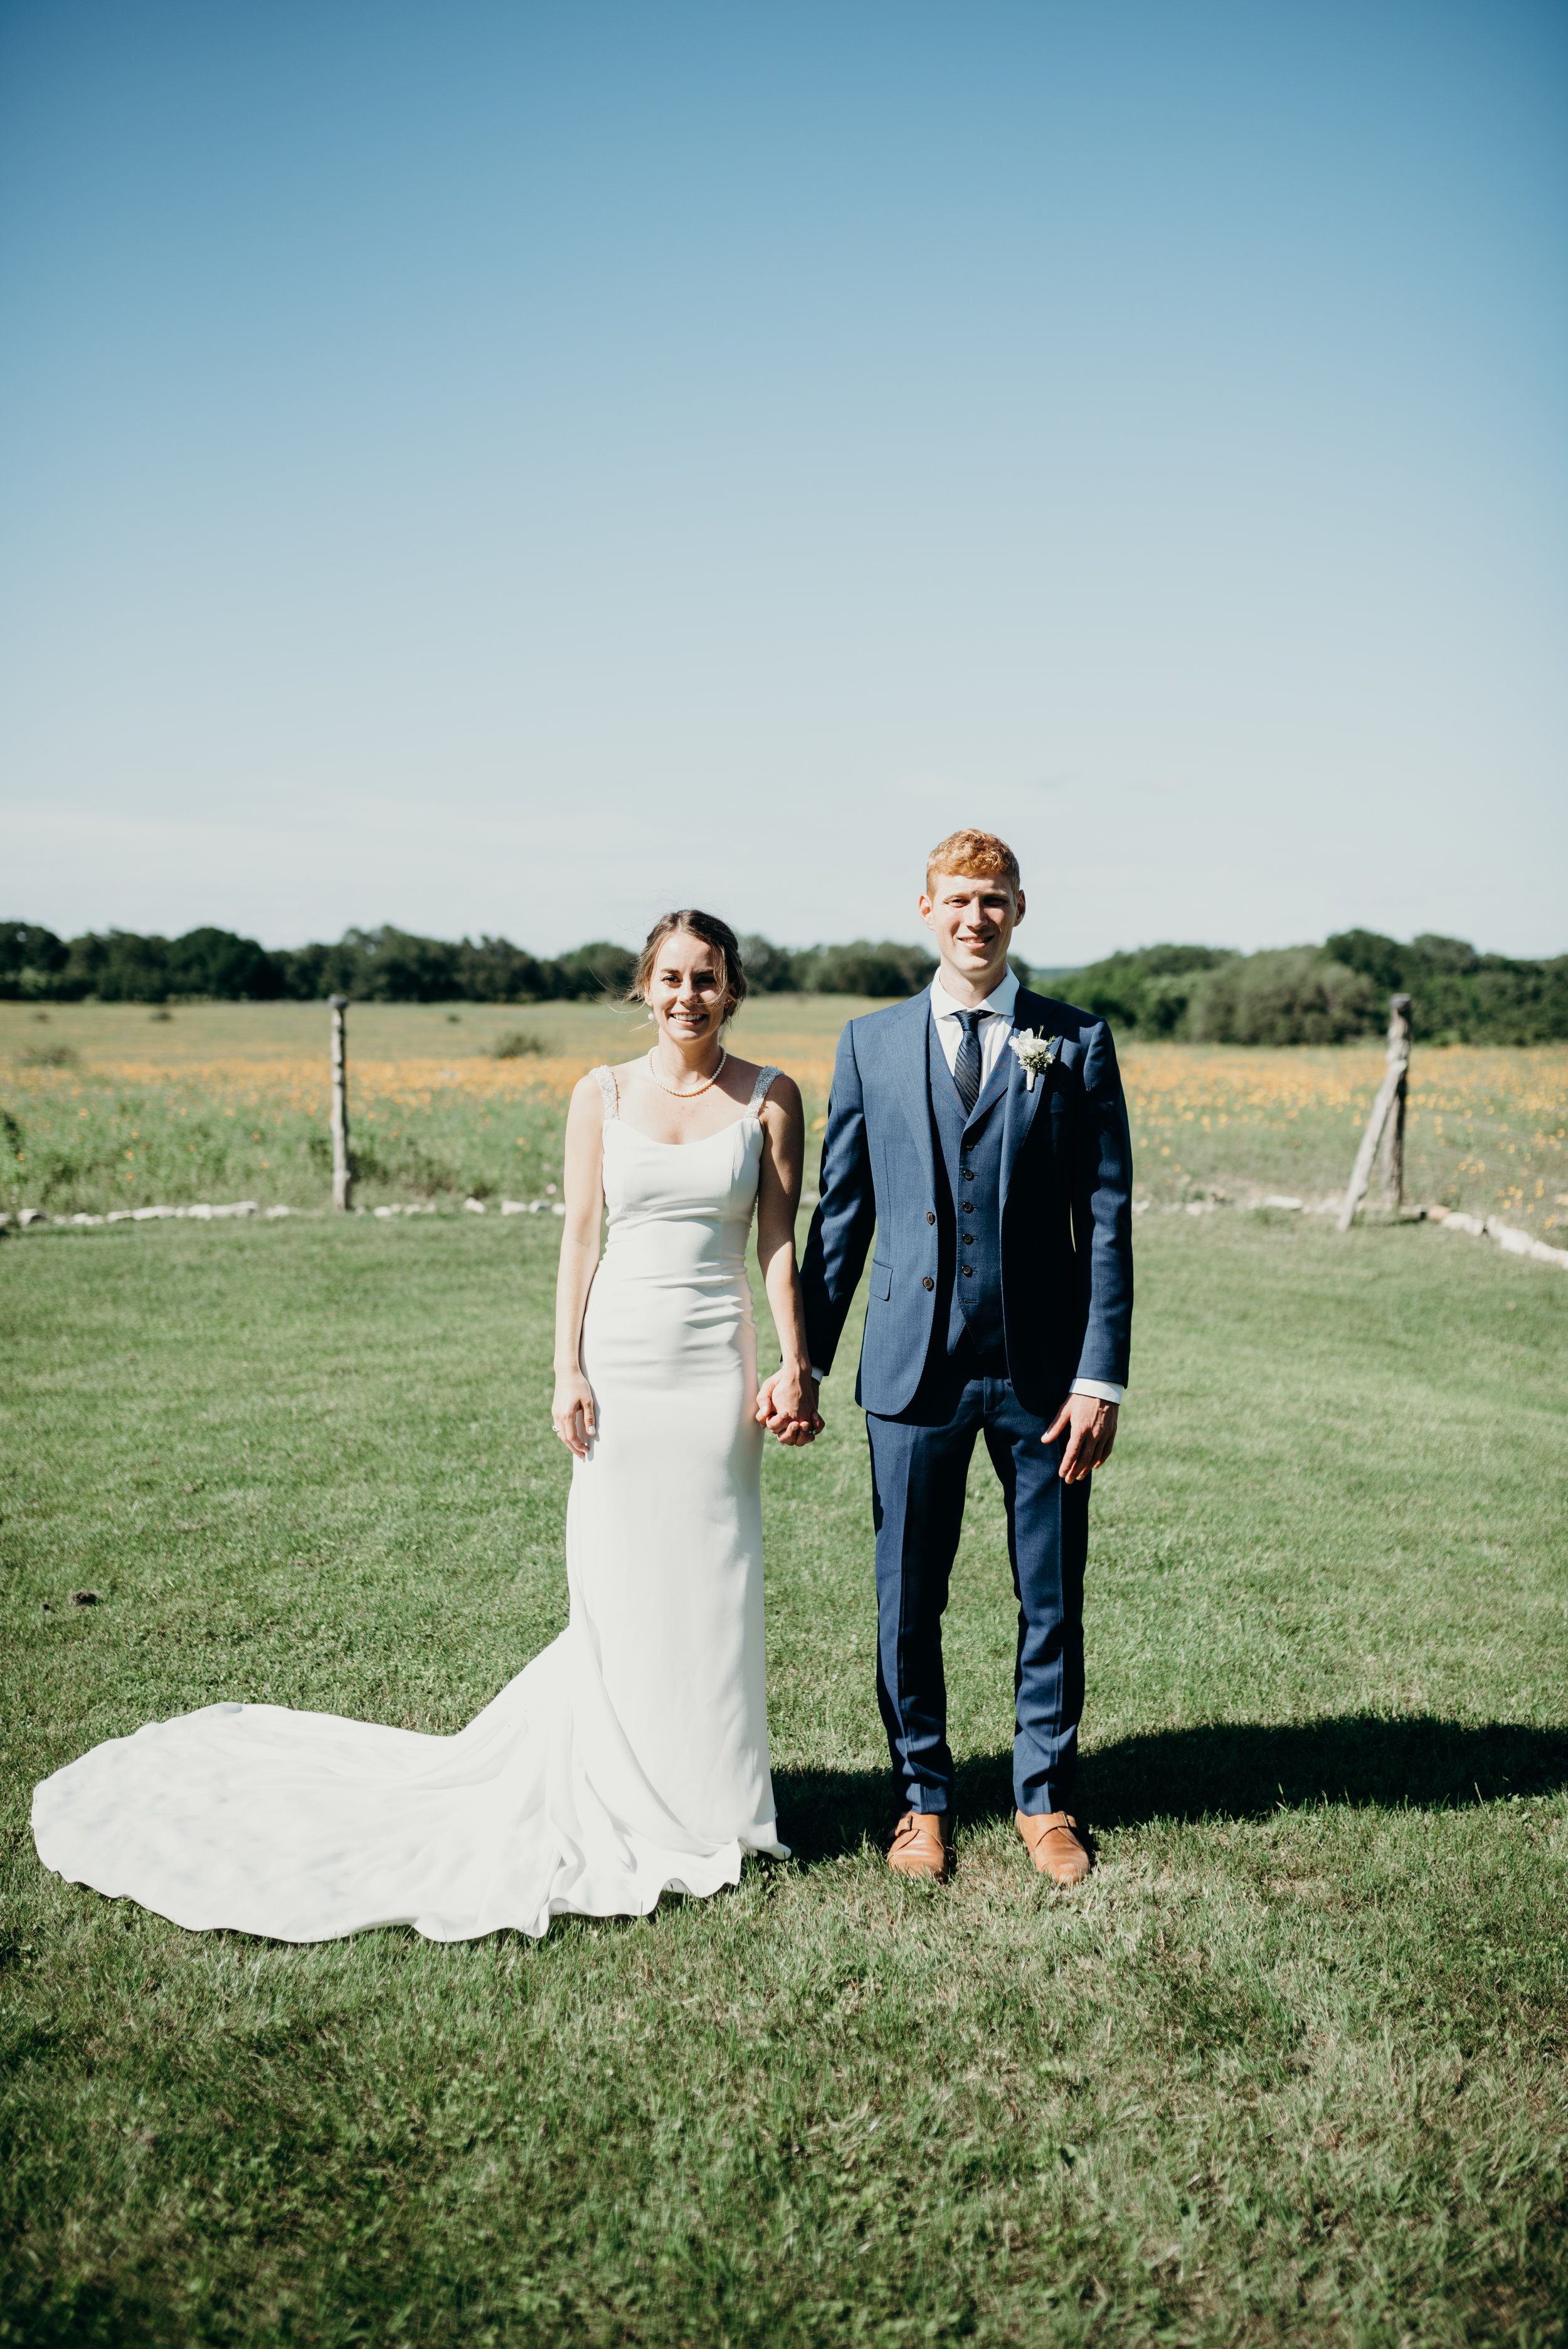 Megan+Sam Wedding-190.JPG